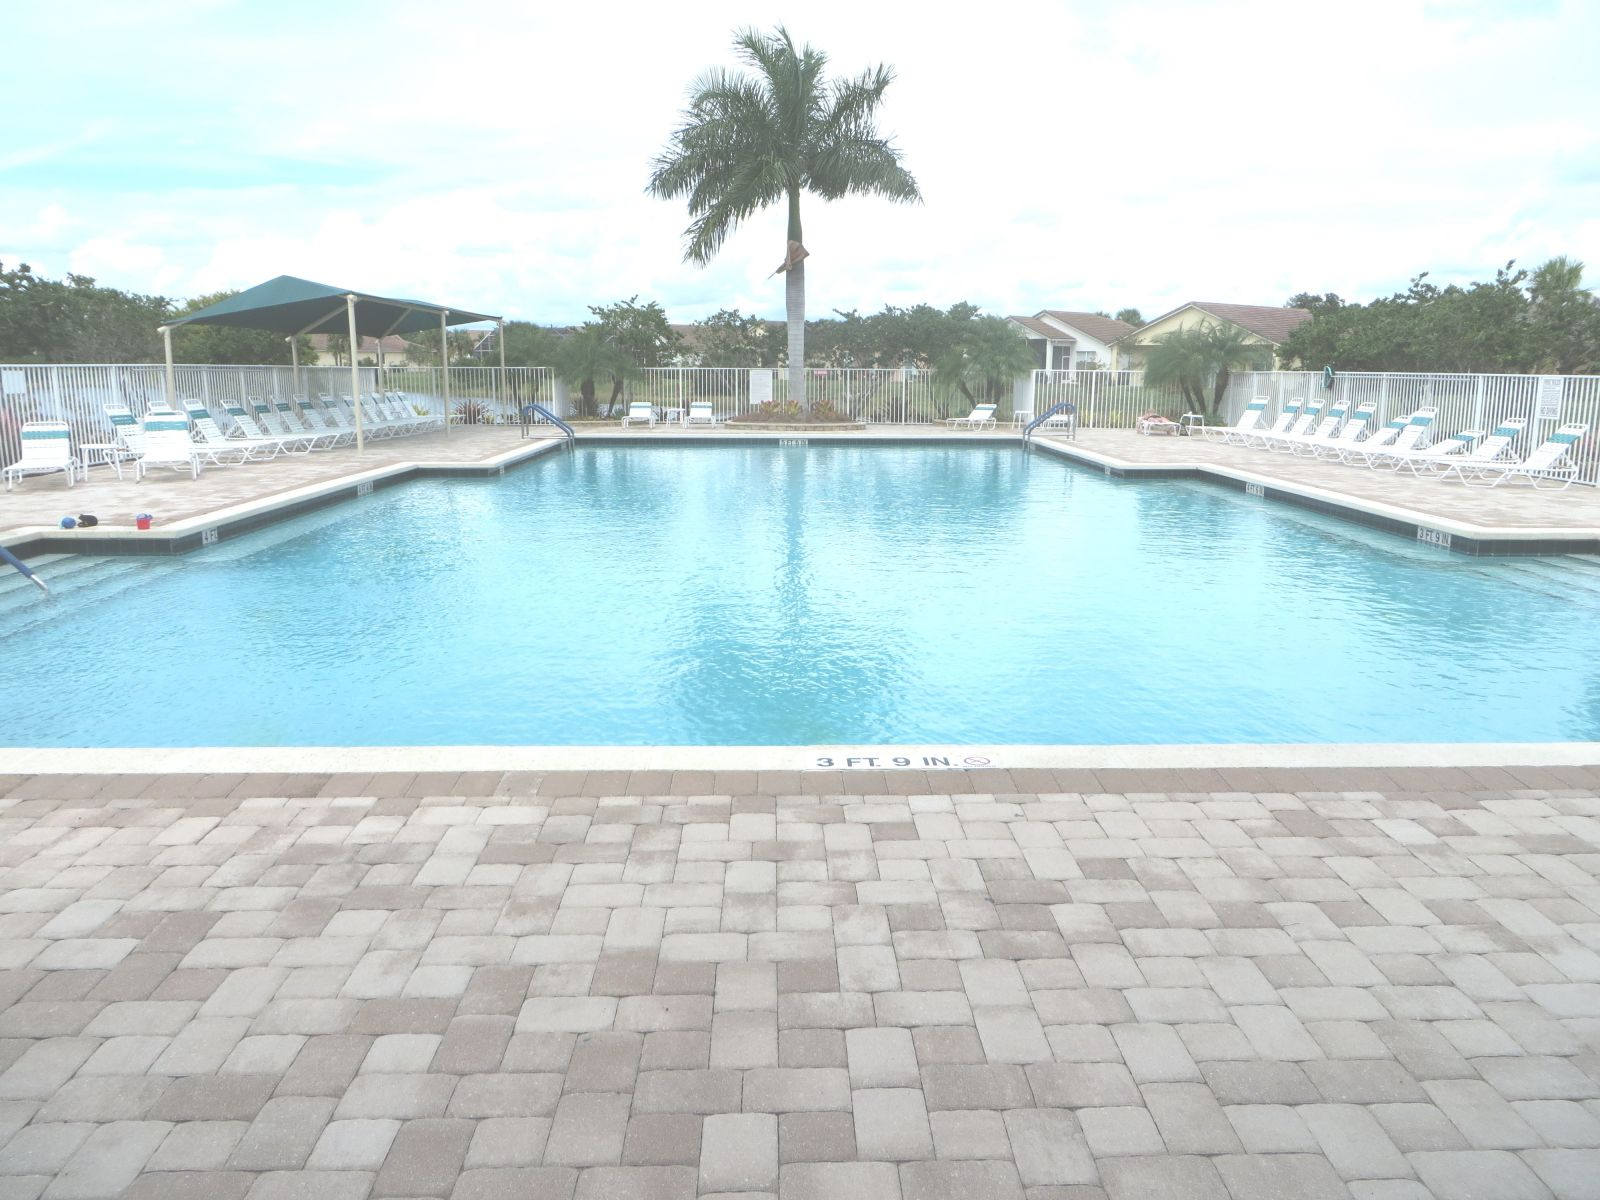 Heritage Oaks at Tradition Port St. Lucie Homes